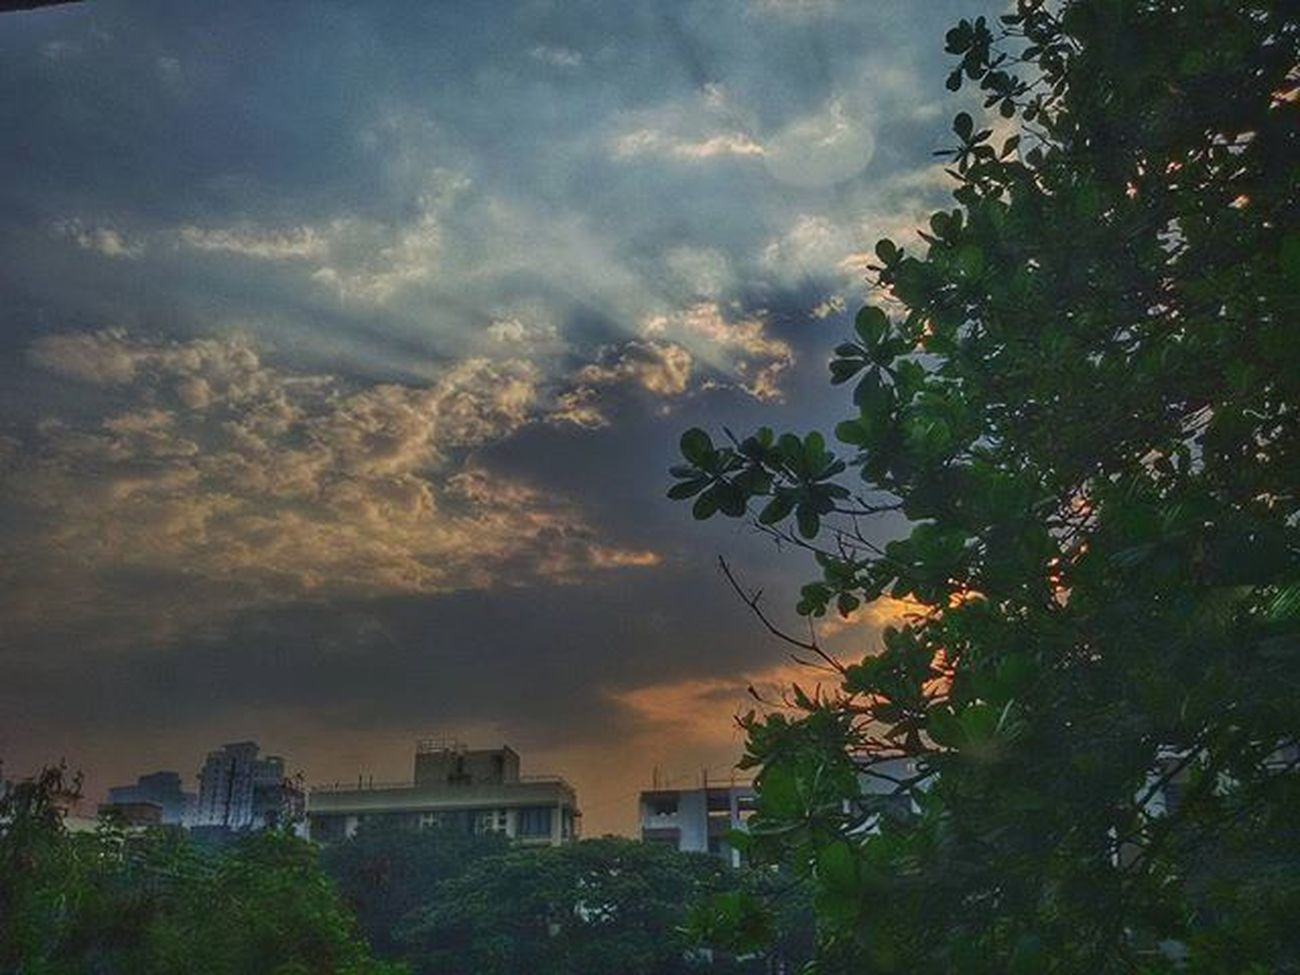 Morningnature Naturewalk  Naturelovers Nature Naturebueaty Sunrise Sunrise_sunsets_aroundworld Instapic Pics Photo Instagram Indianphotographersclub Indianphotographer Firstlookindia Firstlook_india Indianinstagramers Instagramers PhonePhotography Mobilephotographers Mobilephotography Photographer Samsunggalaxygrand2 Mumbai Maharshtra India maharashtra_ig @phodus_competition @inspiroindia @mumbaibizarre @insta_maharashtra mumbainature ngma mycolourofjoy